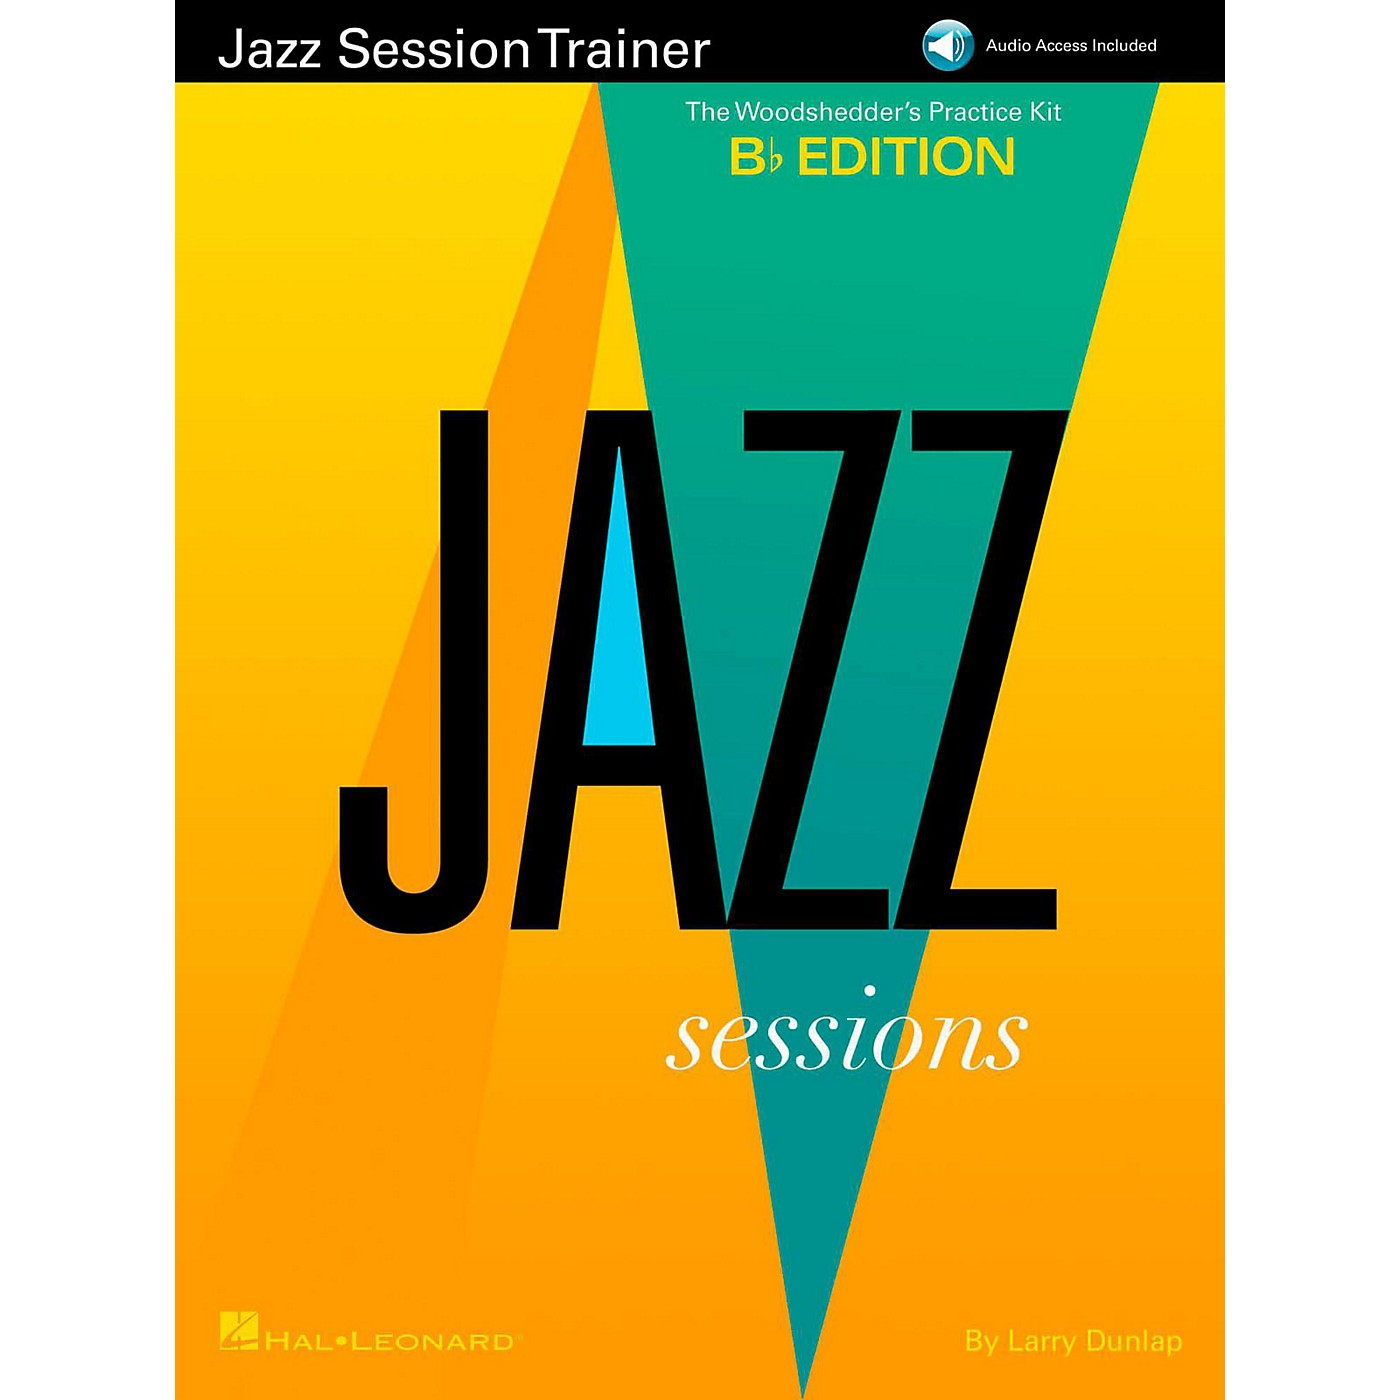 Hal Leonard Jazz Session Trainer - The Woodshedder's Practice Kit  B-Flat Edition (Book/Online Audio) thumbnail